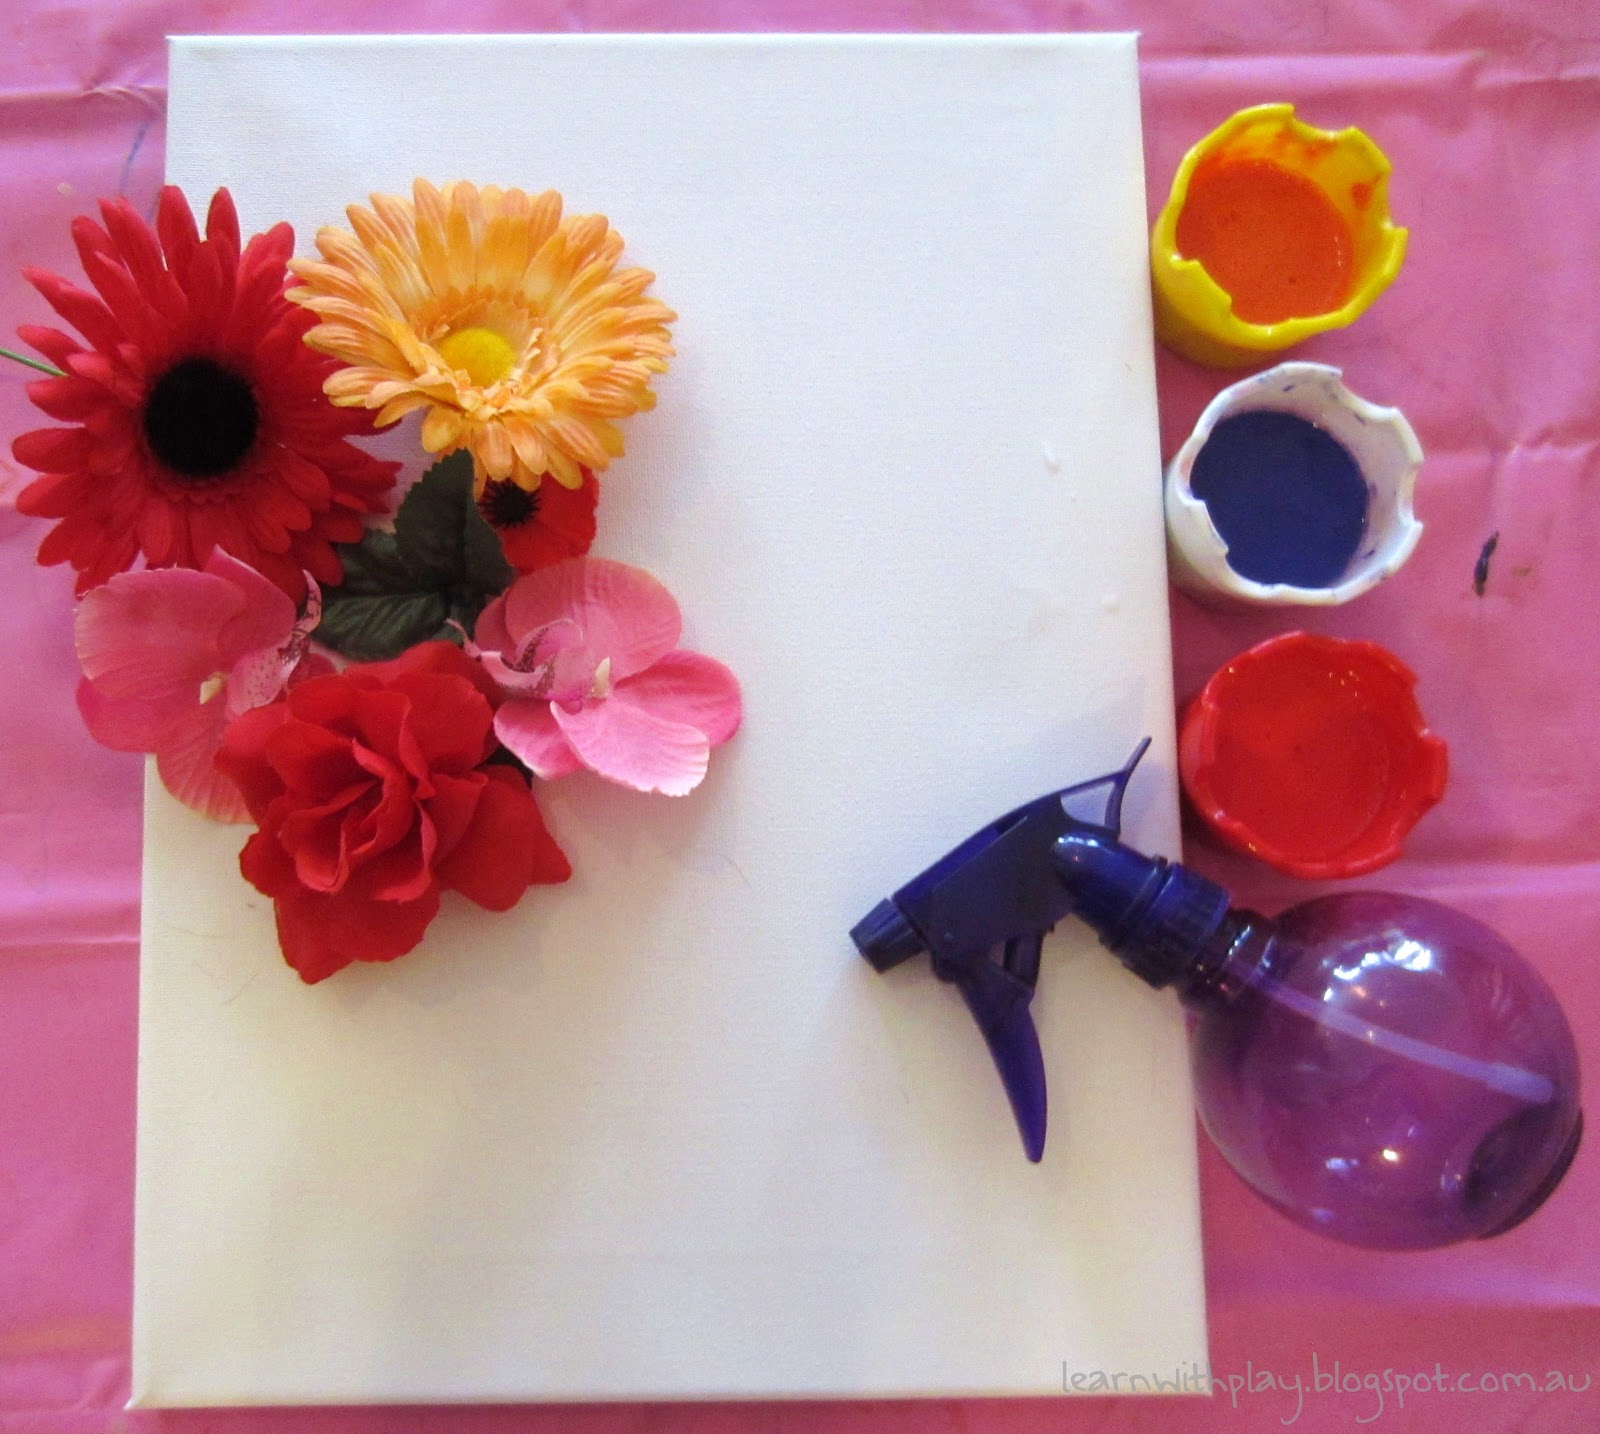 Learn with play at home flower stencil spray painting invitation to create mightylinksfo